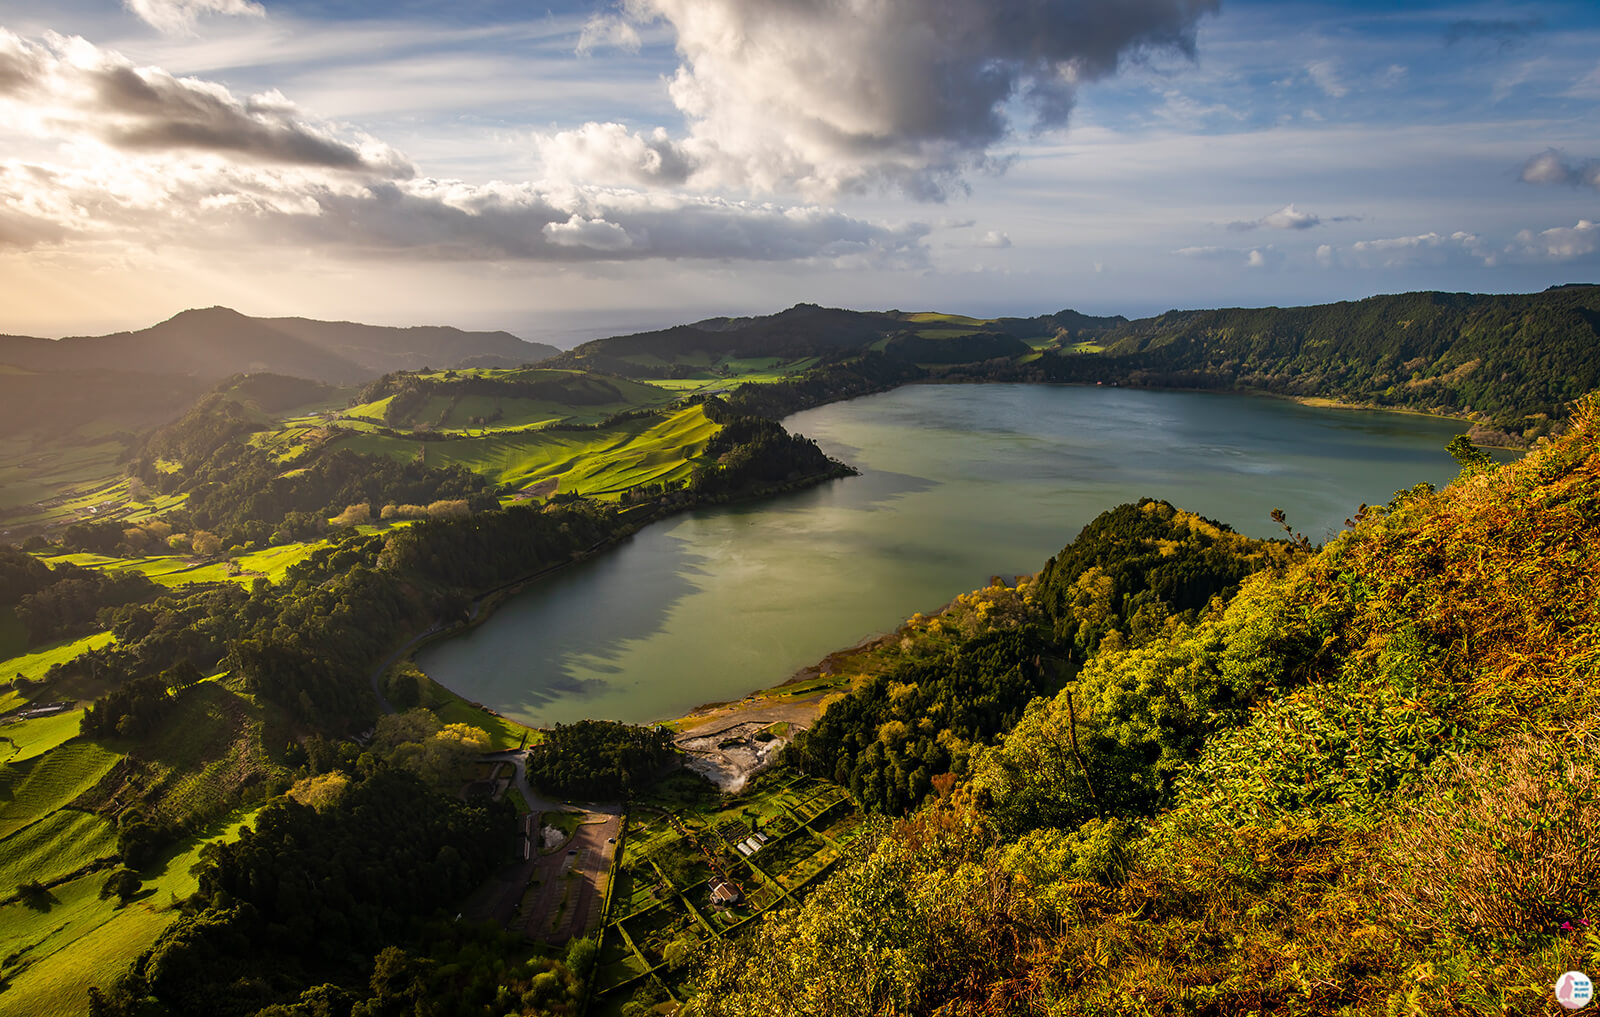 Morning at Lagoa das Furnas, São Miguel Island, Azores